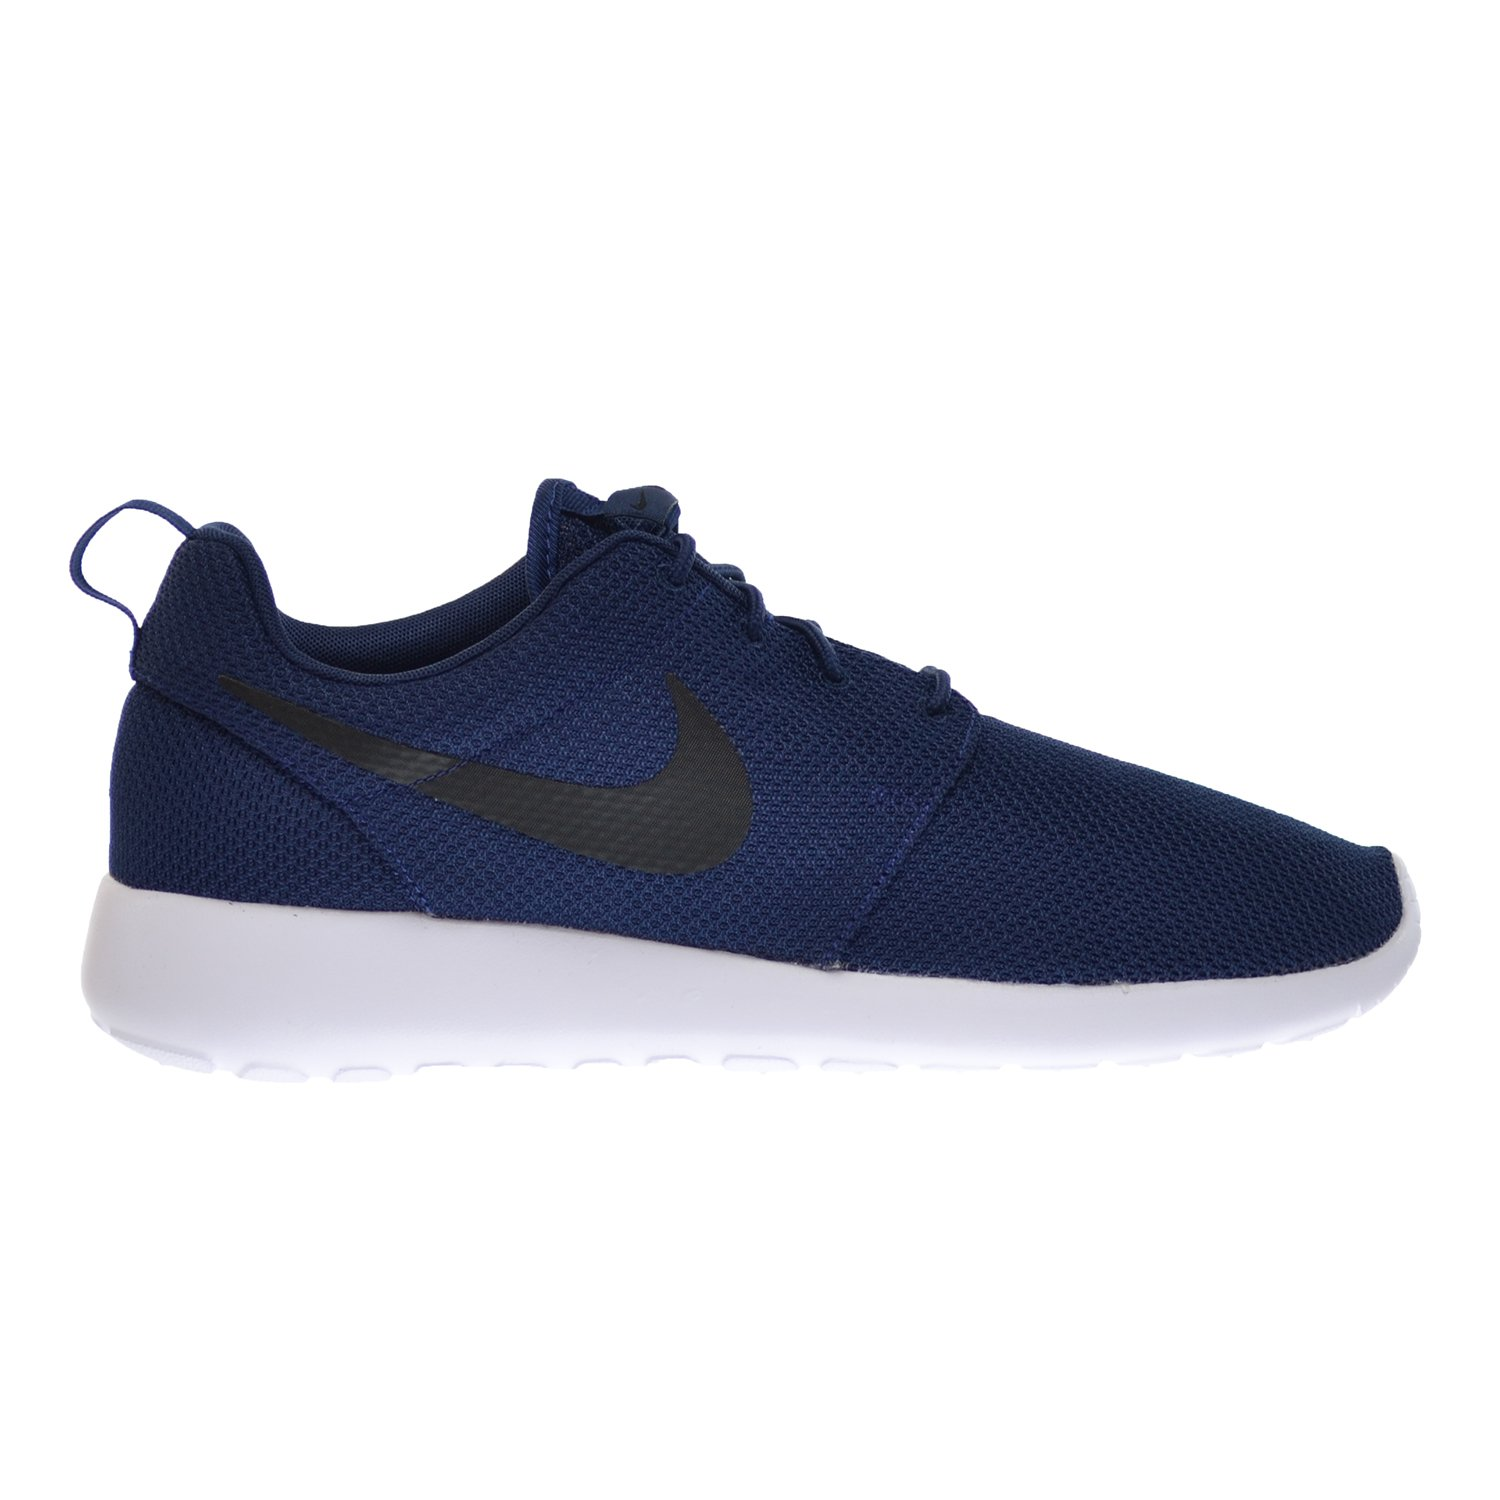 Nike Rosherun Men's Shoes Midnight NavyBlack White 511881 405 (13 D(M) US)